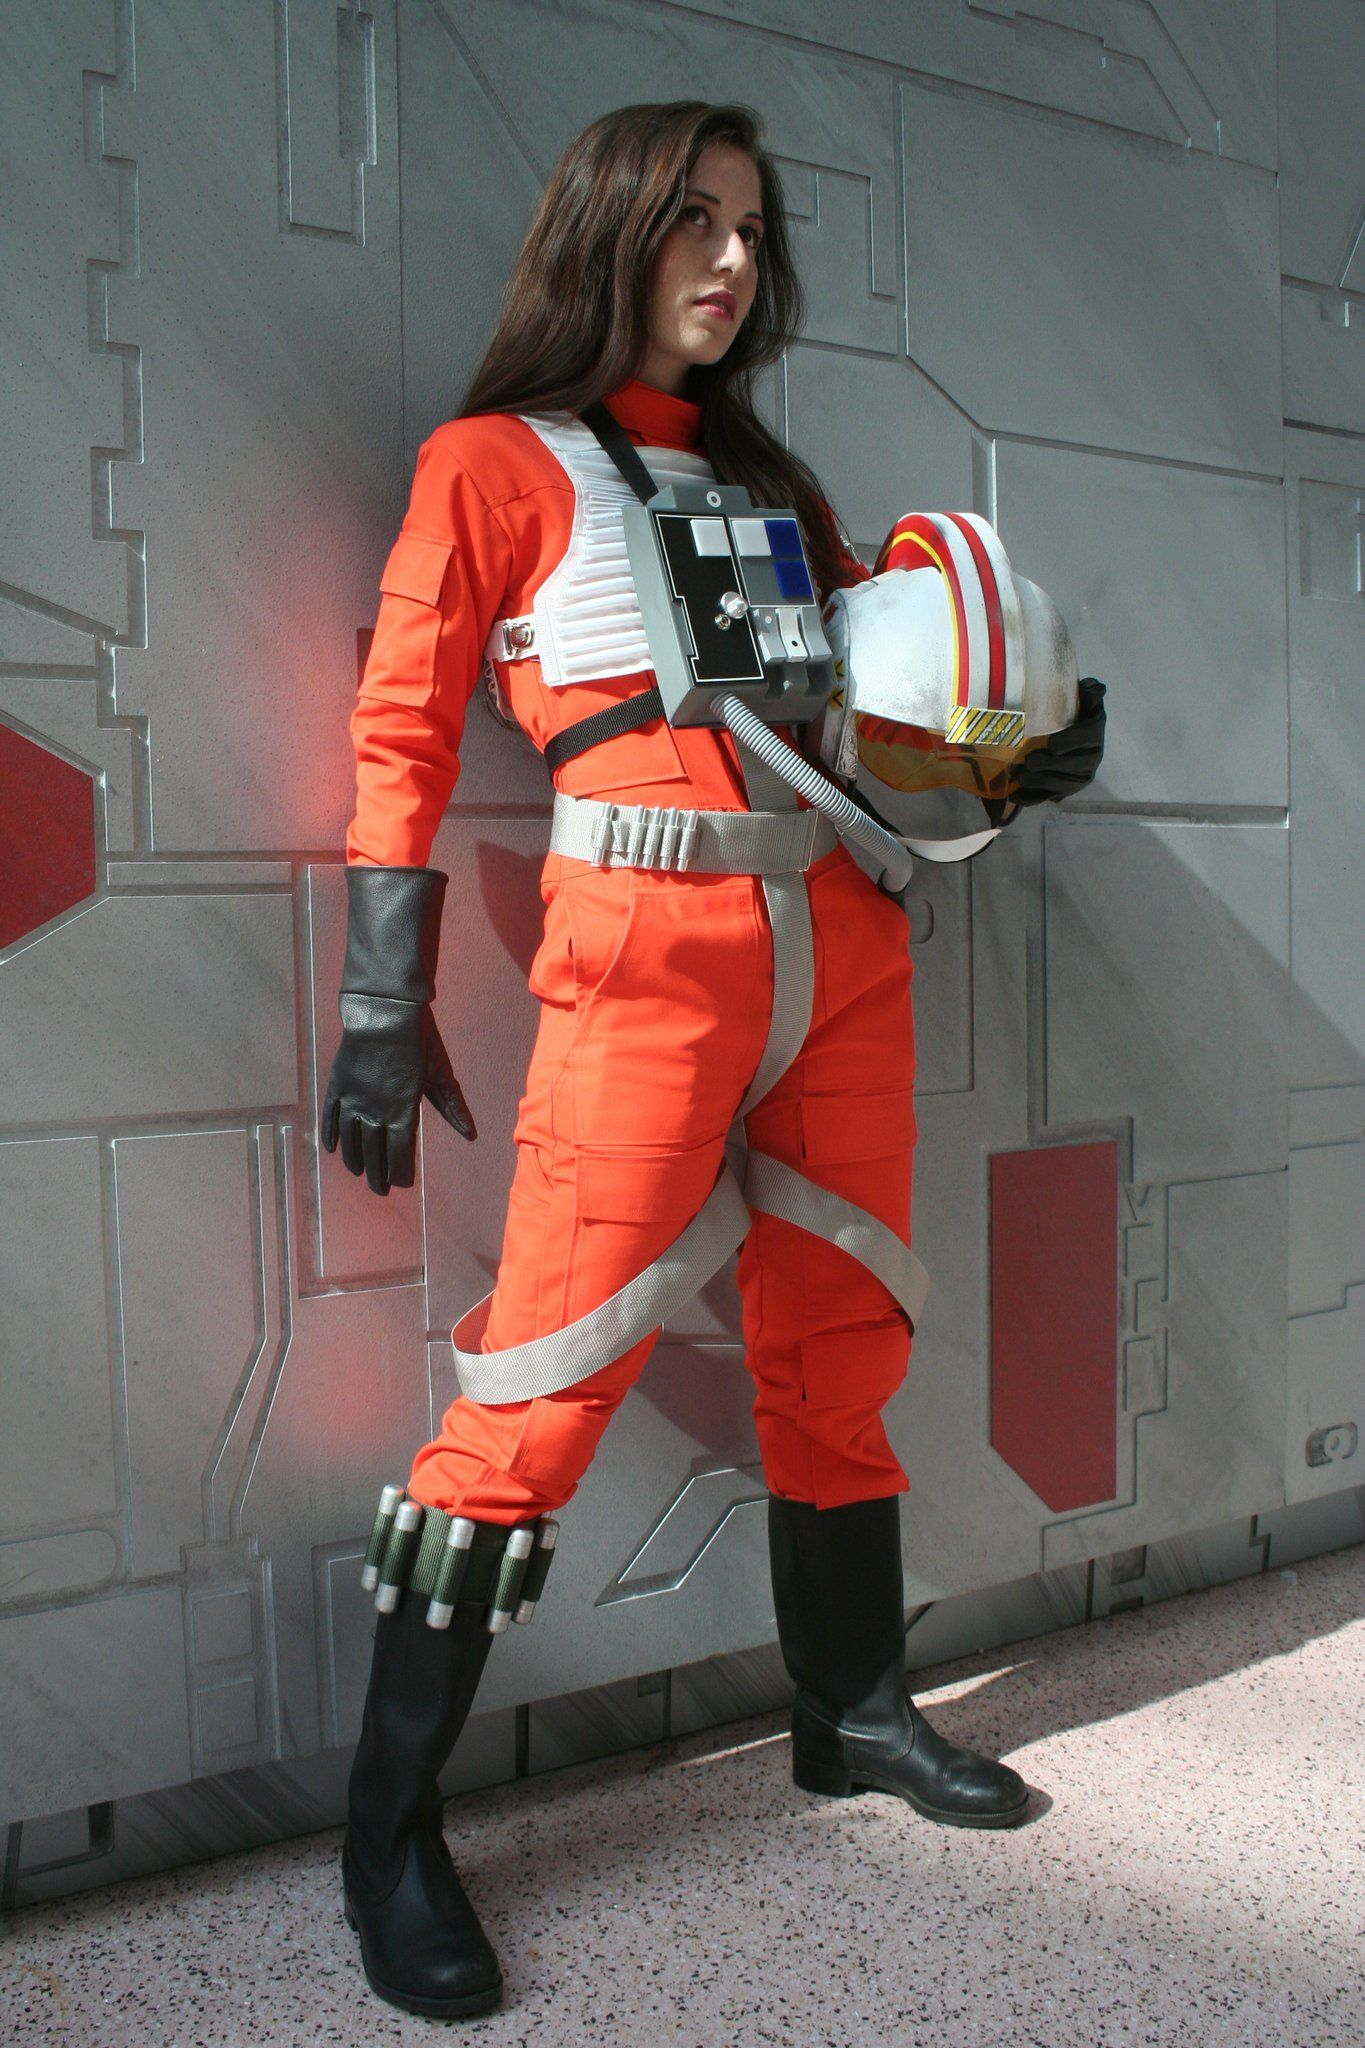 Make your own diy poe dameron costume using everyday materials jaina solo cosplay google search more solutioingenieria Gallery